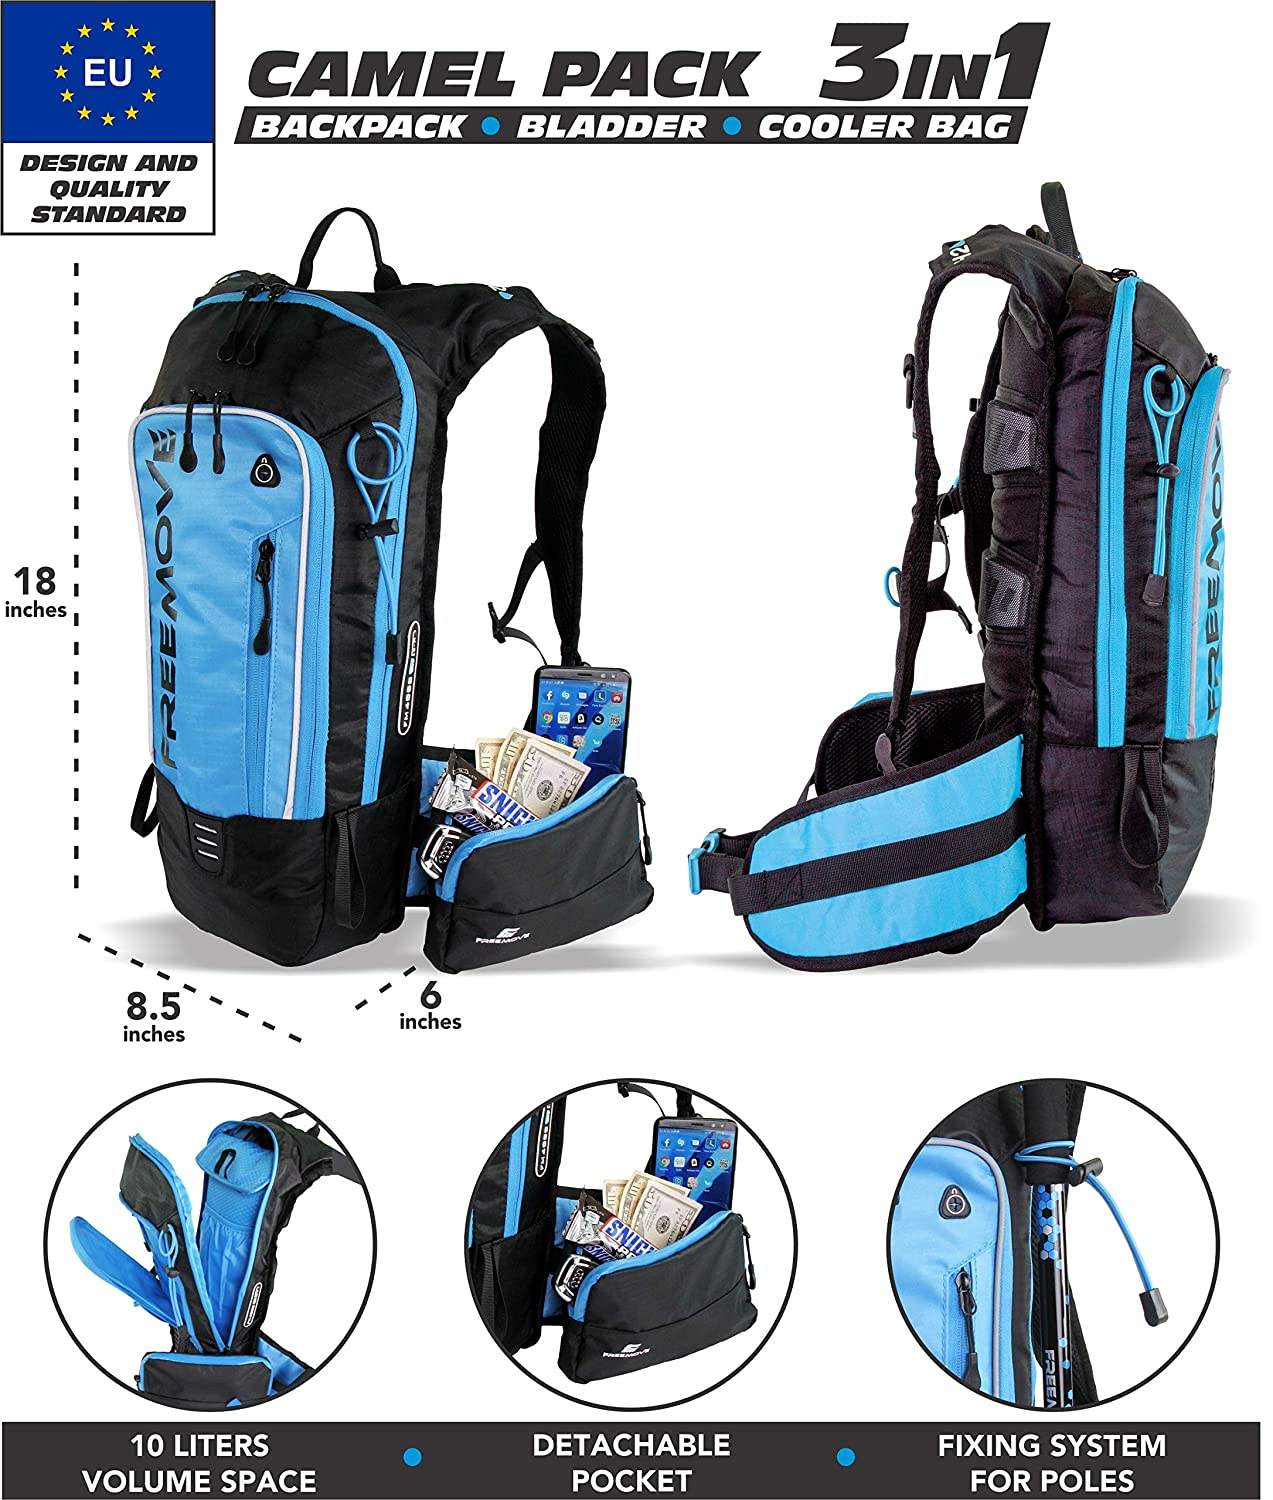 Fully Adjustable 10L Hydration Backpack Cycling FREEMOVE Hydration Pack Running Lightweight and Water-resistant Great for Hiking Jogging Cooler Bag Gear for Hiking Lightweight Camel Backpack External Pocket 2 Liter Water Bladder Leakproof